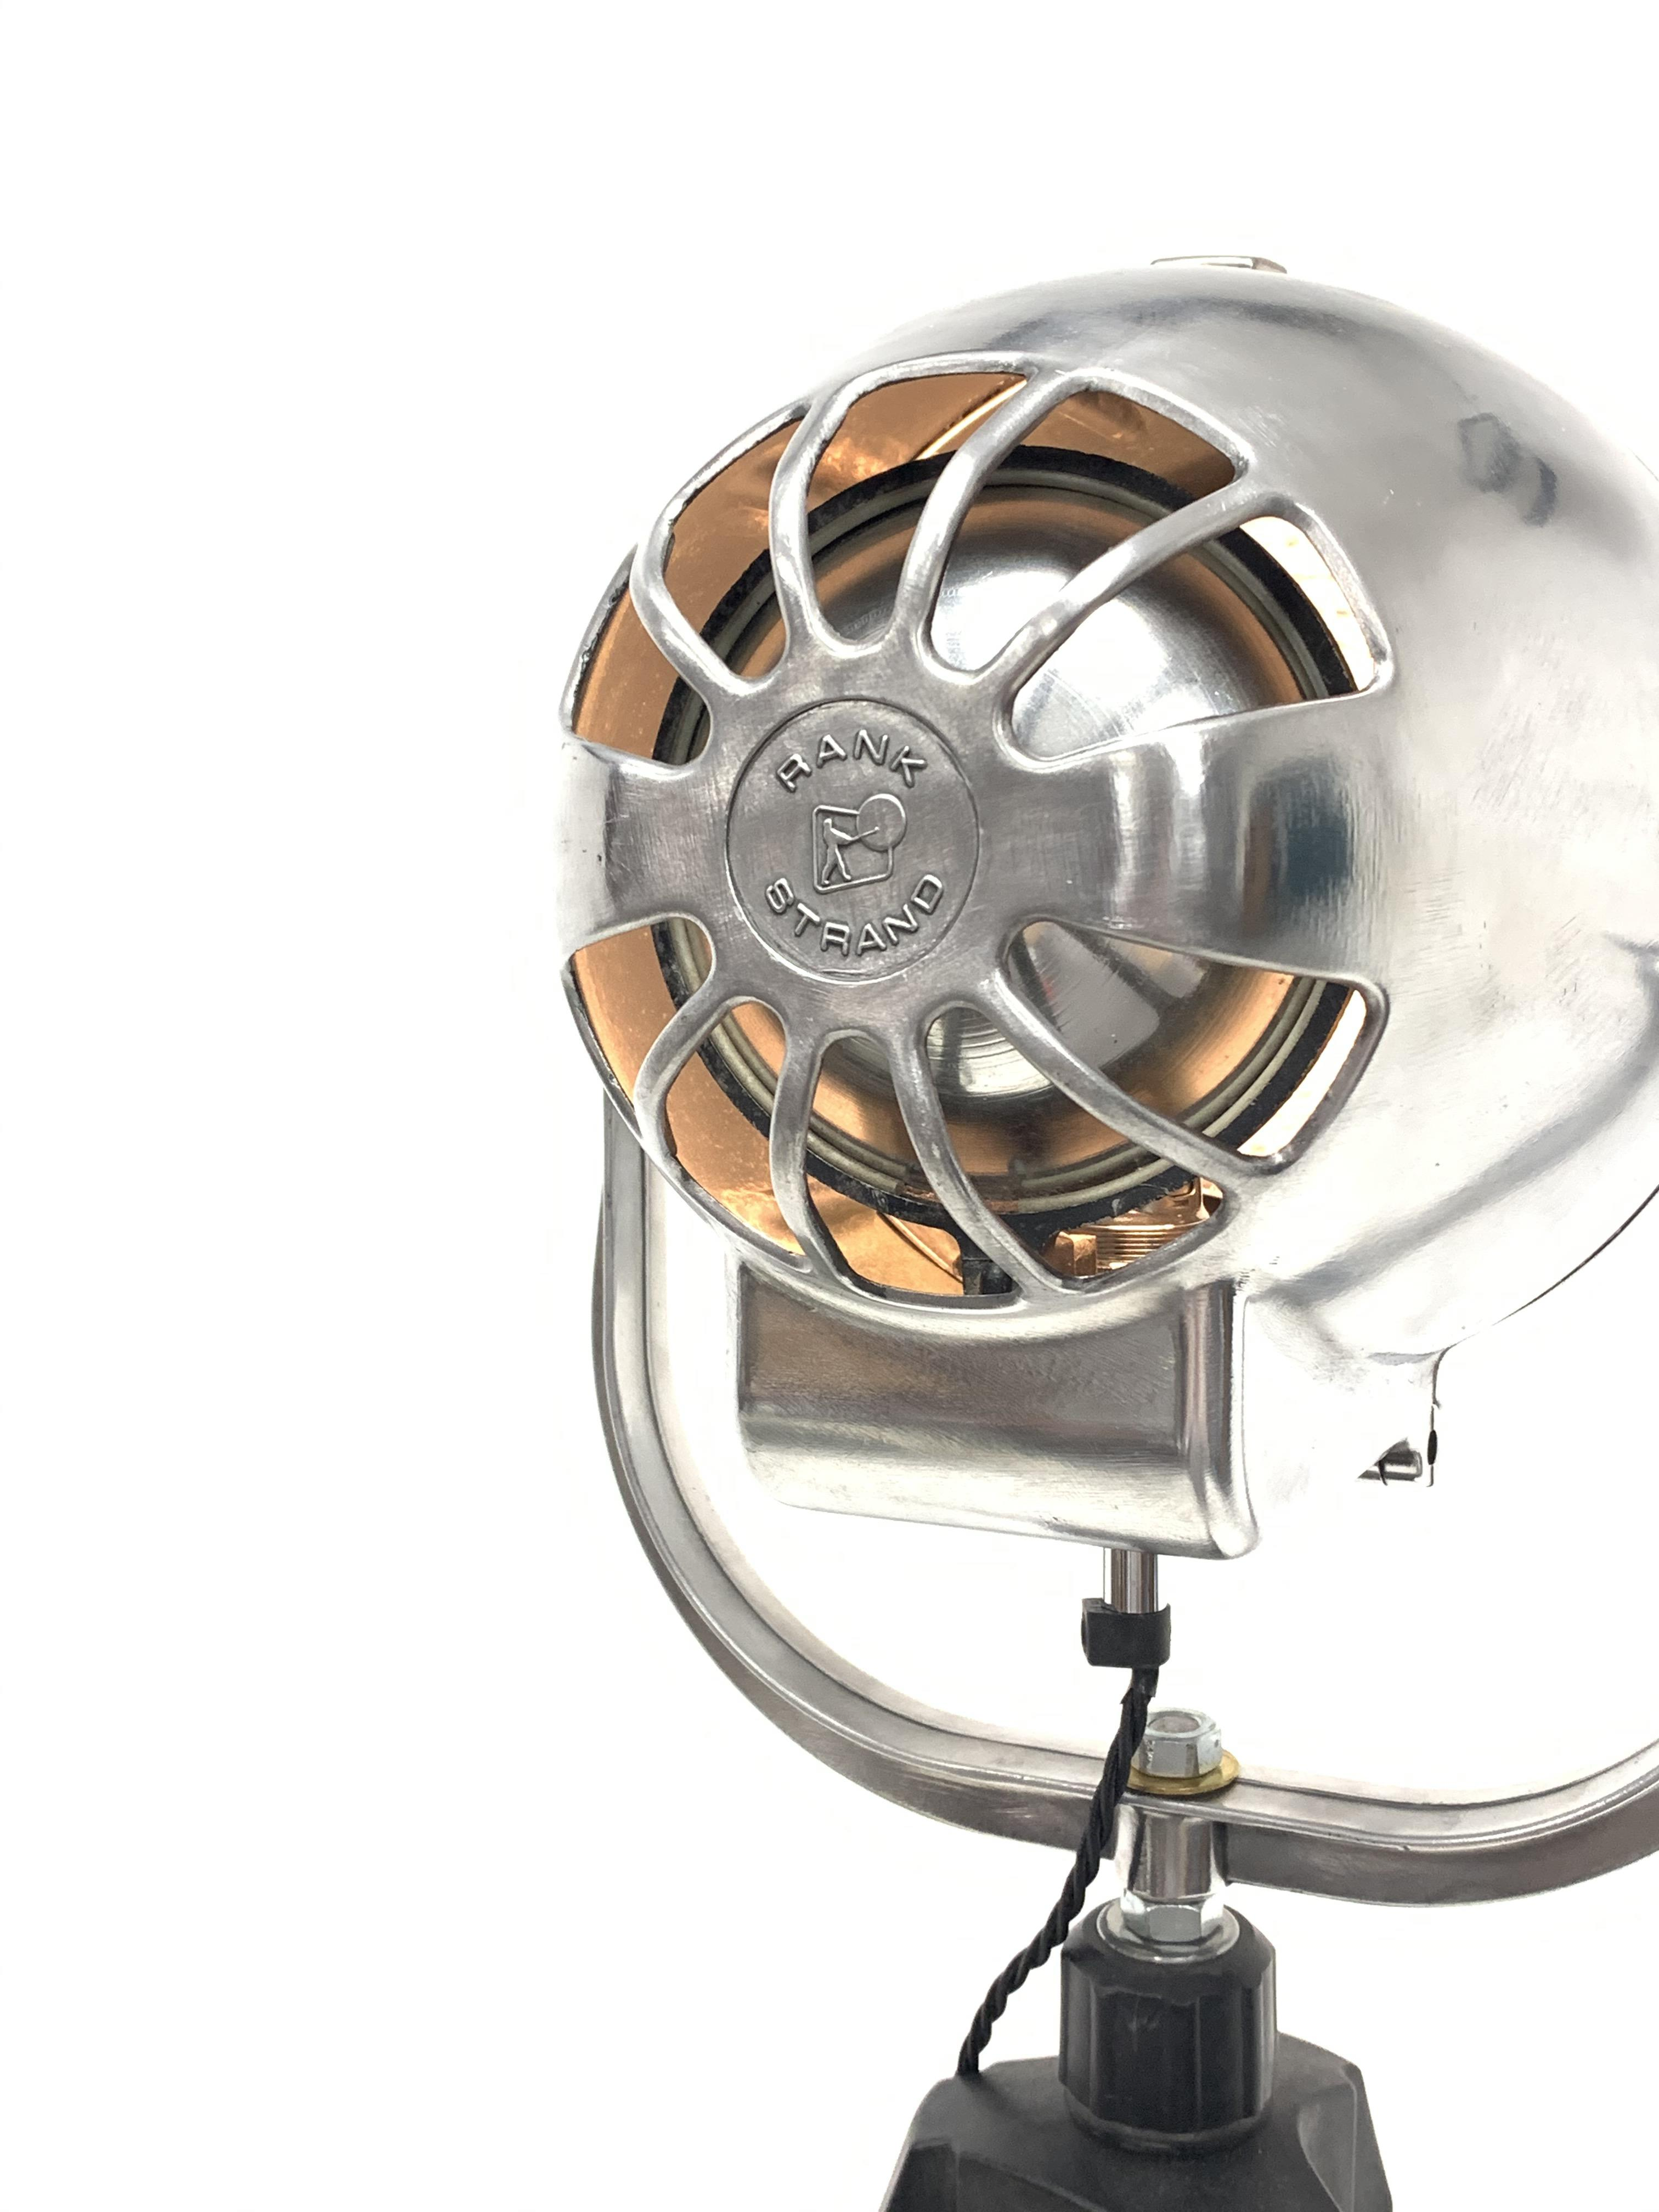 Mid 20th century 'Rank Strand' polished alloy stage light - Image 3 of 3